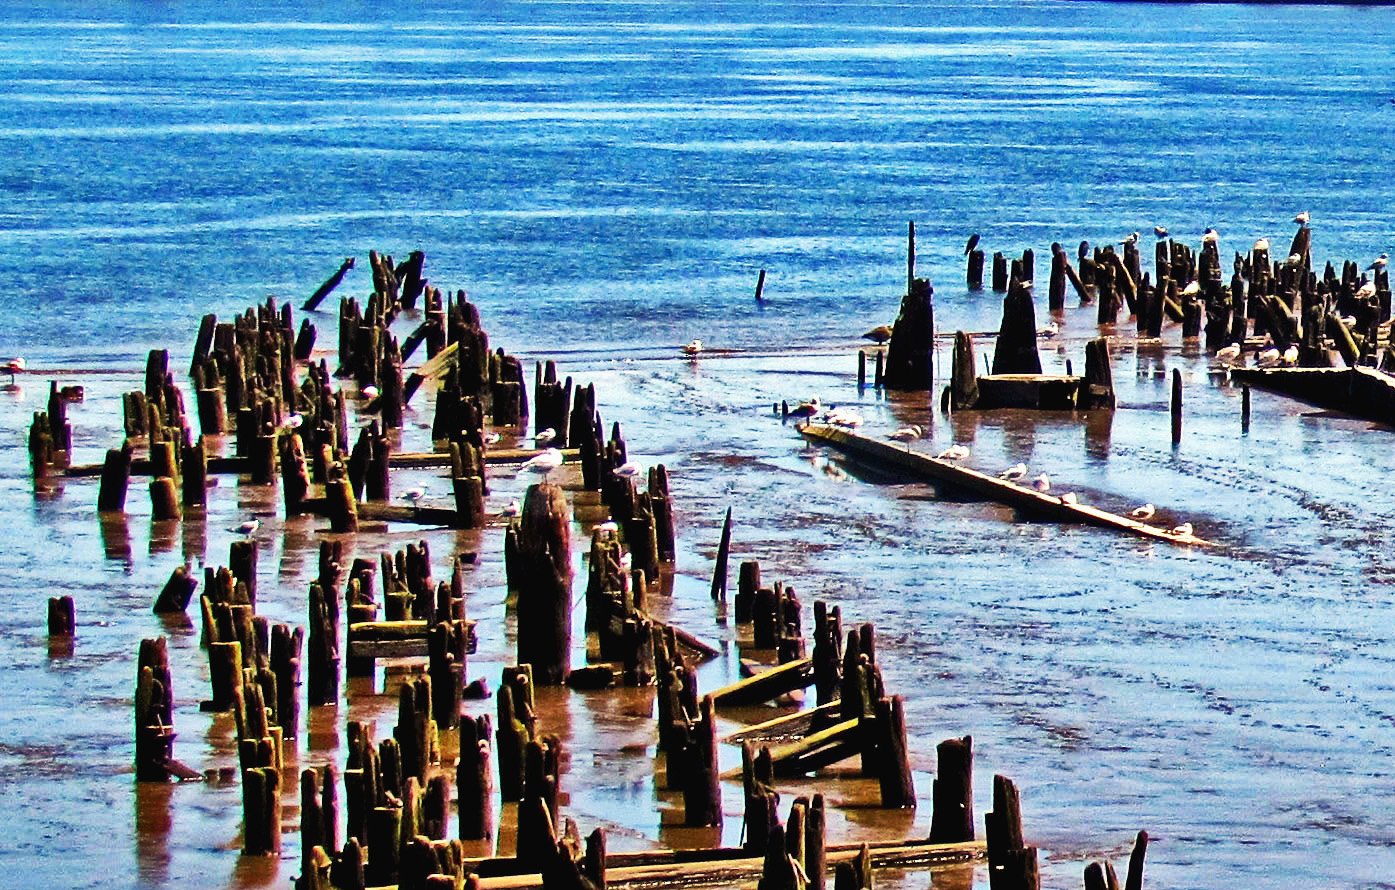 Sea Gulls Perched On Old Abandoned Pilings